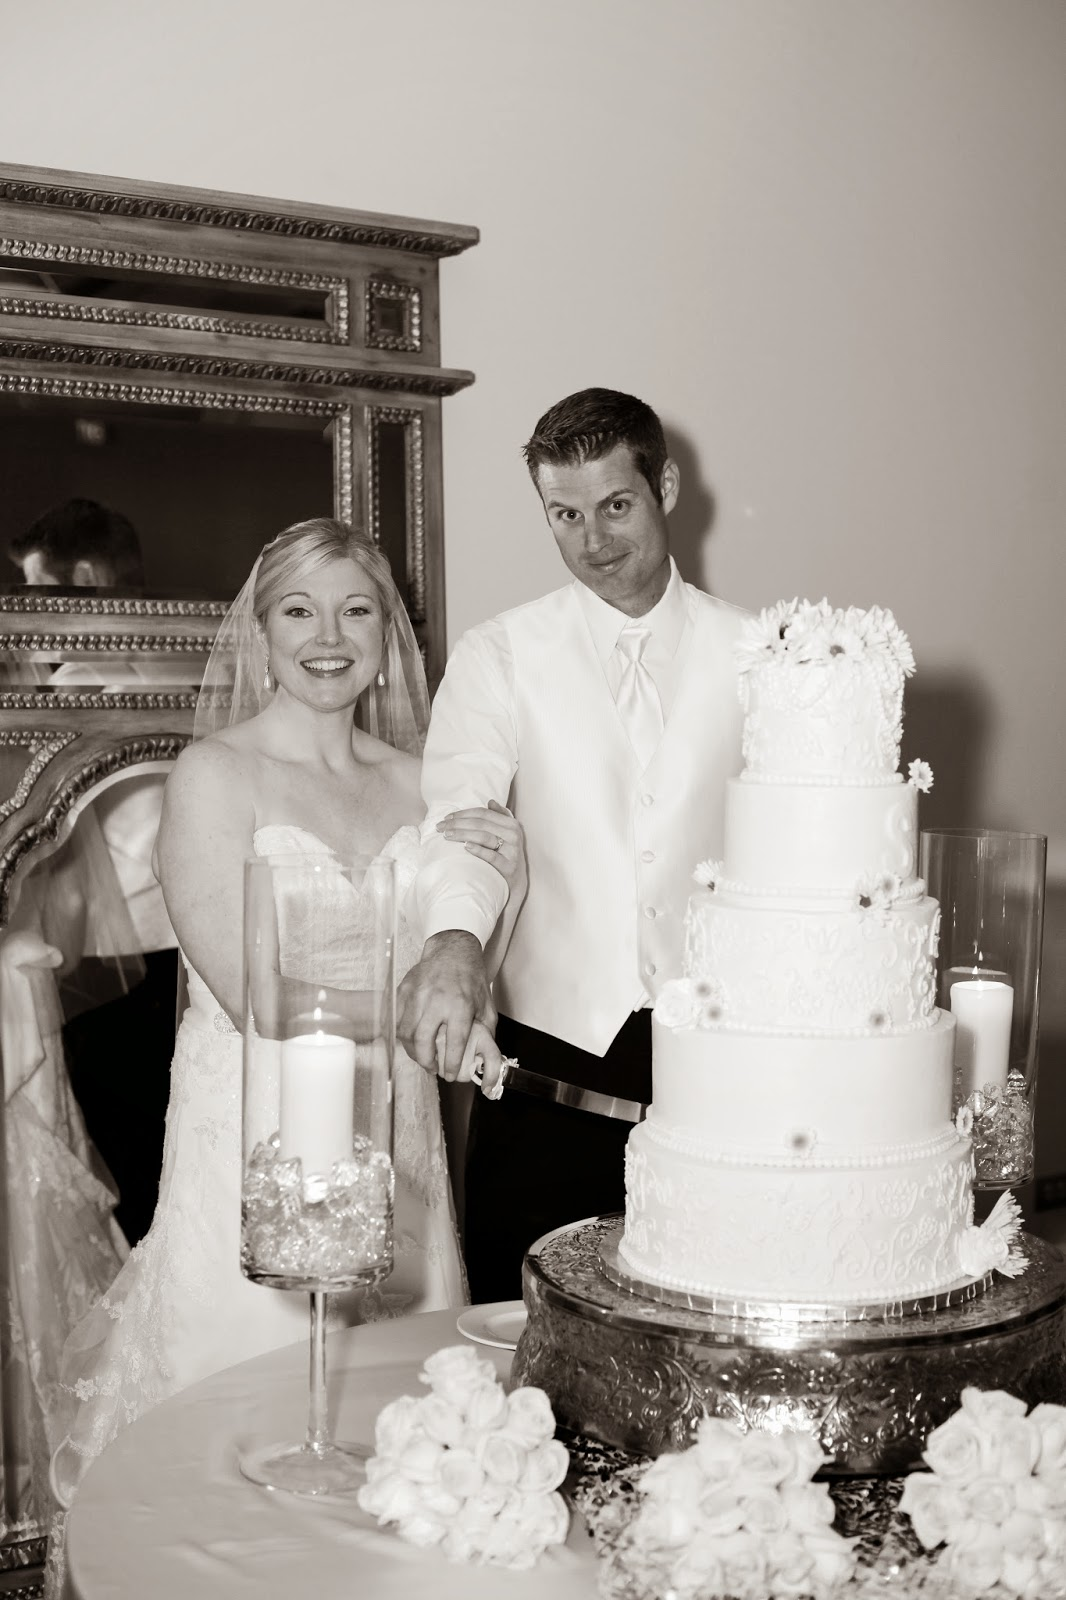 AAS: The Wedding Cake: Pearls and Lace